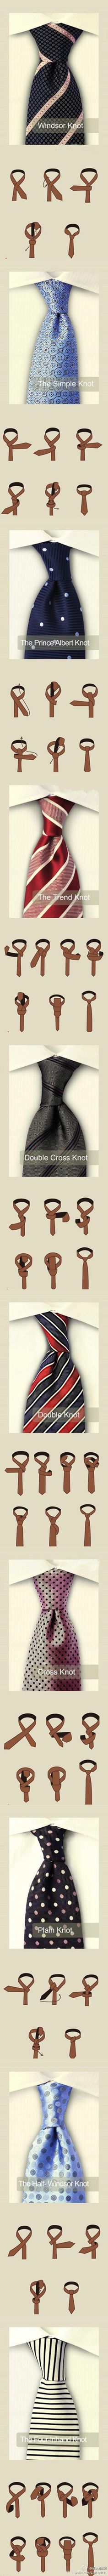 tieing tie styles, good to know